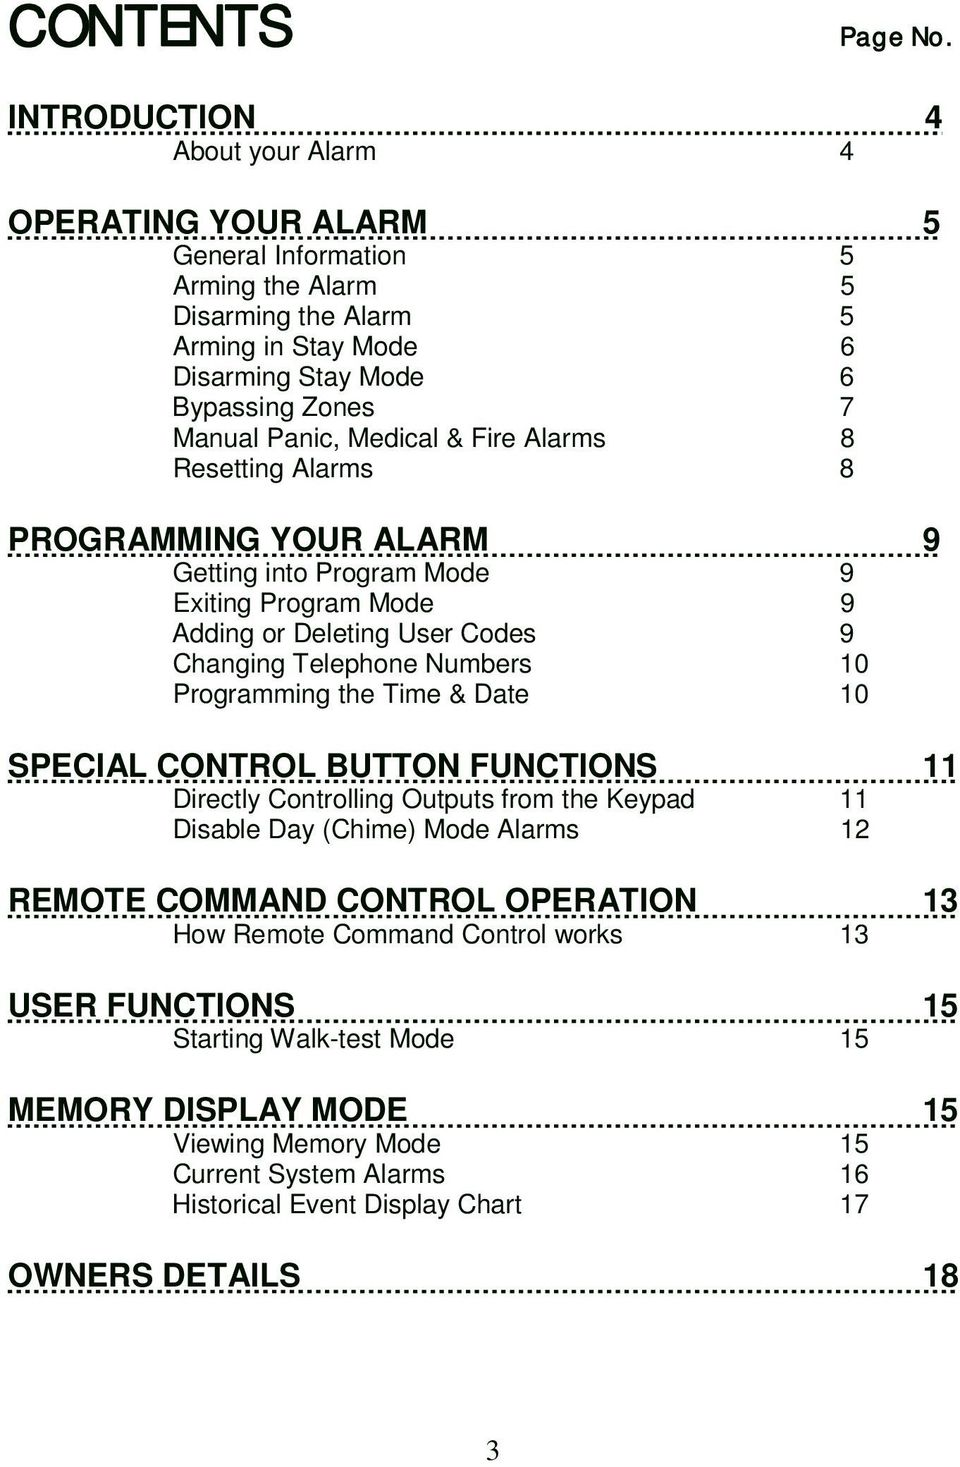 Medical & Fire Alarms 8 Resetting Alarms 8 PROGRAMMING YOUR ALARM 9 Getting into Program Mode 9 Exiting Program Mode 9 Adding or Deleting User Codes 9 Changing Telephone Numbers 10 Programming the